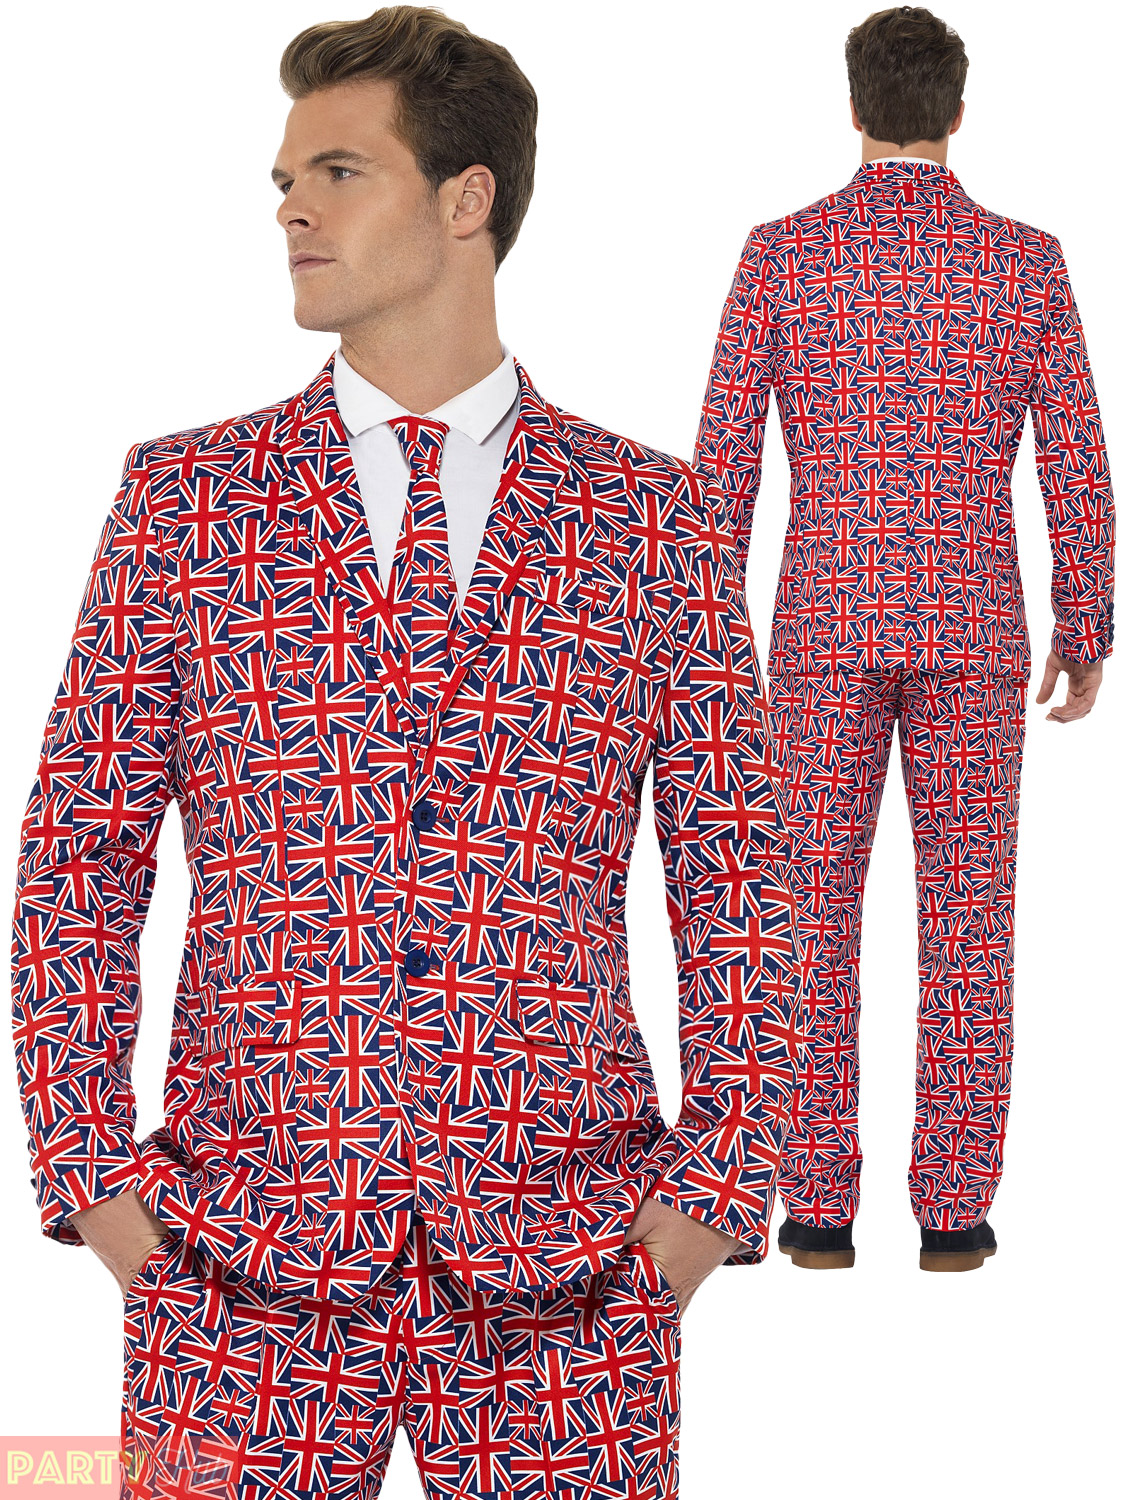 Adults Union Jack Stand Out Suit Mens British Fancy Dress Stag Do ...